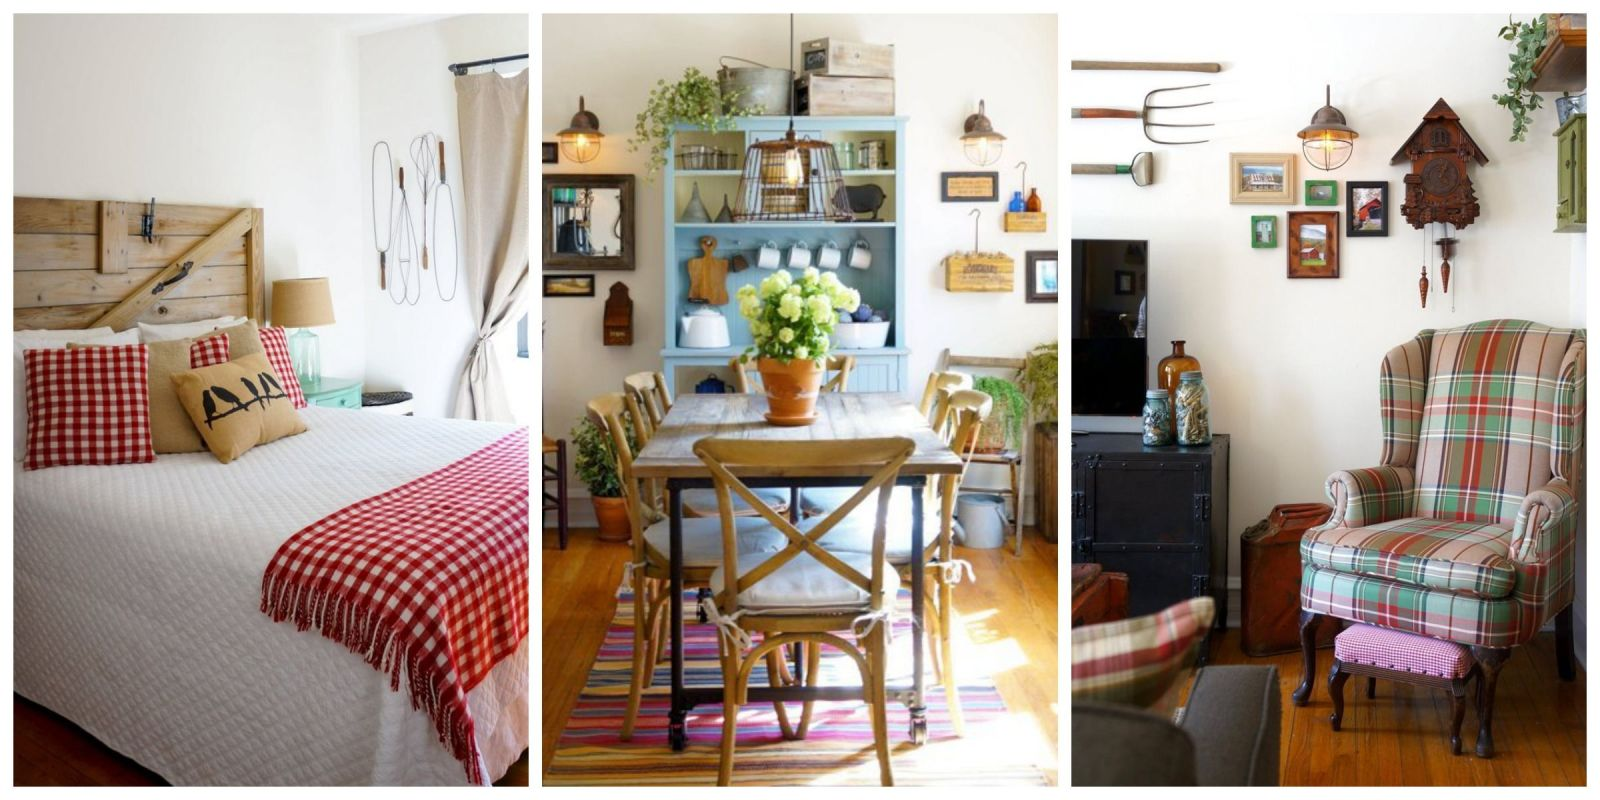 weu0027re crushing on the primitive country decor in this city apartment - PKZVHOT